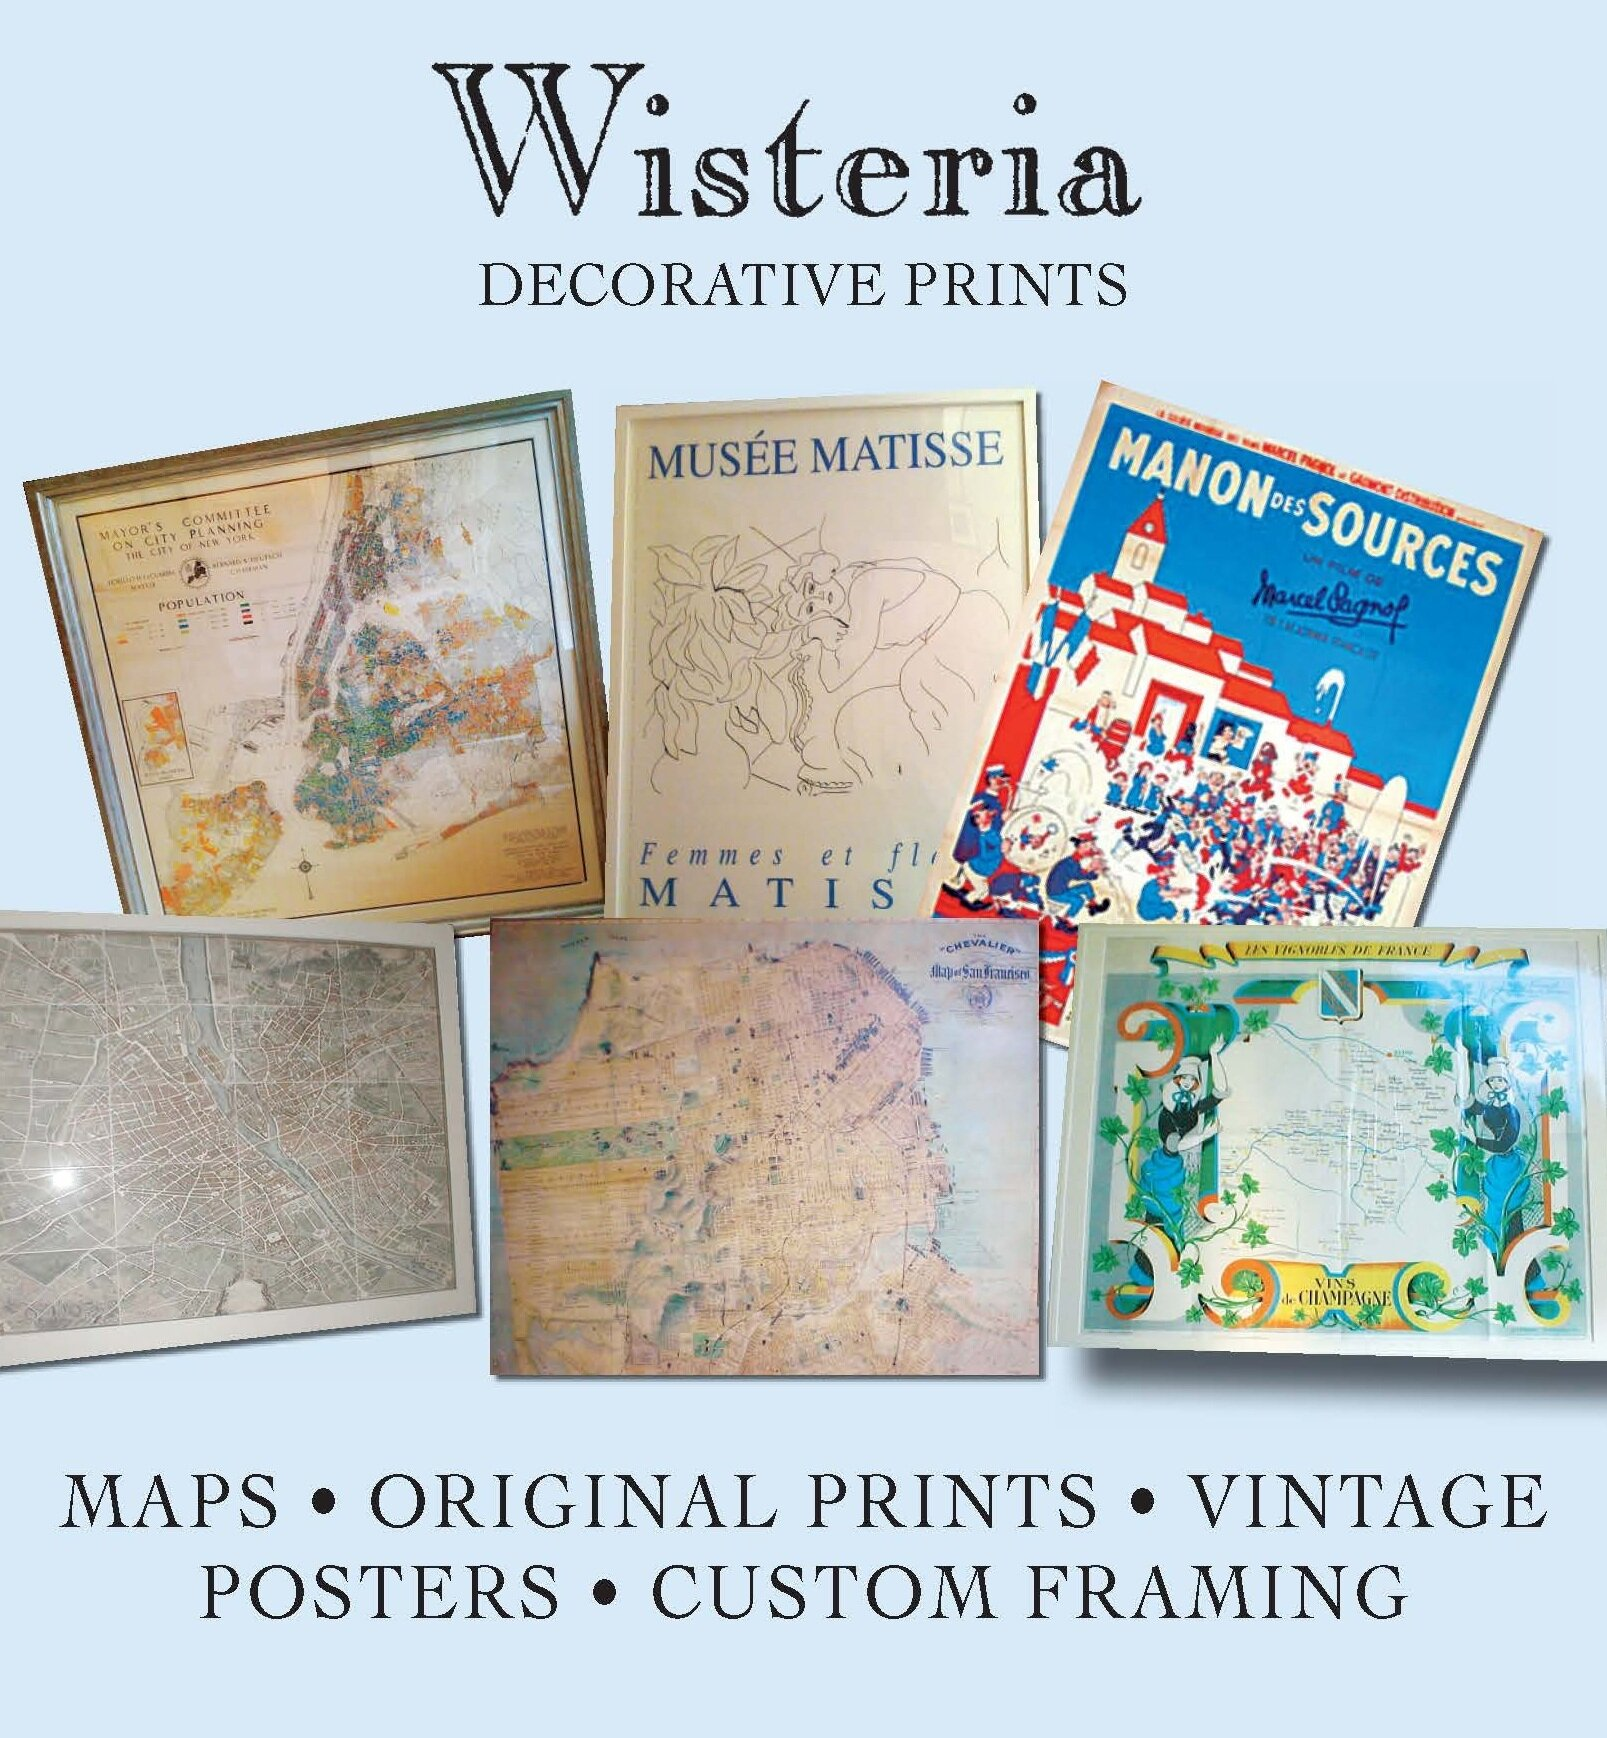 Wisteria Decorative Prints on renewable resource maps, teaching maps, nautical maps, basic maps, dungeon magazine maps, beautiful maps, classic maps, religious maps, land survey maps, decorating with globes and maps, cartography maps, elegant maps, googel maps, groundwater maps, simple maps, fill in the blank maps, useful maps, wall maps, arcgis maps,